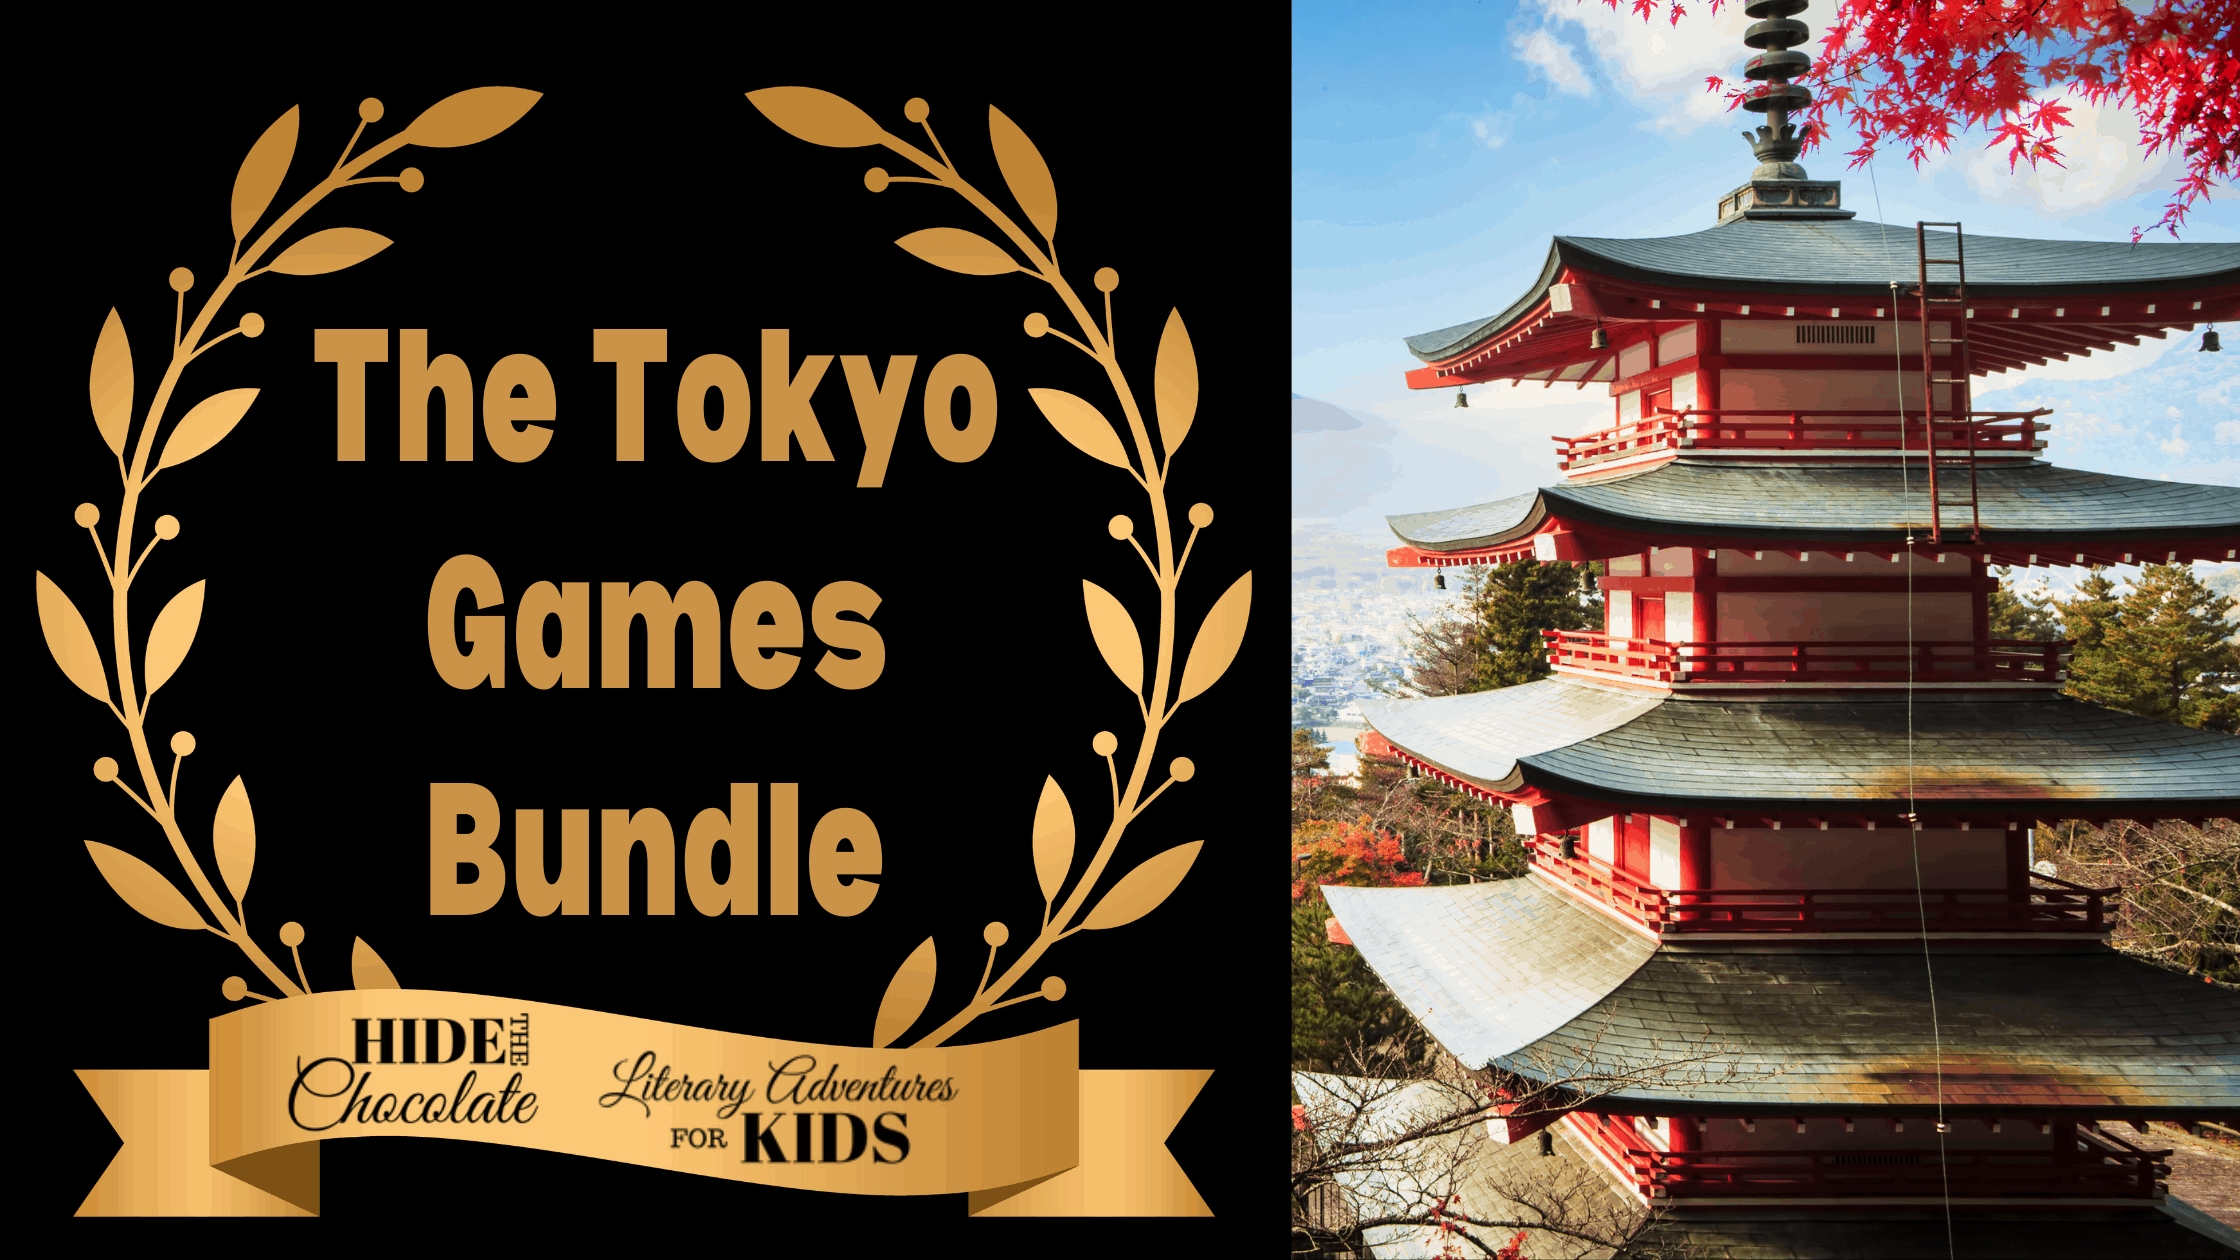 The Tokyo Games Bundle Featured